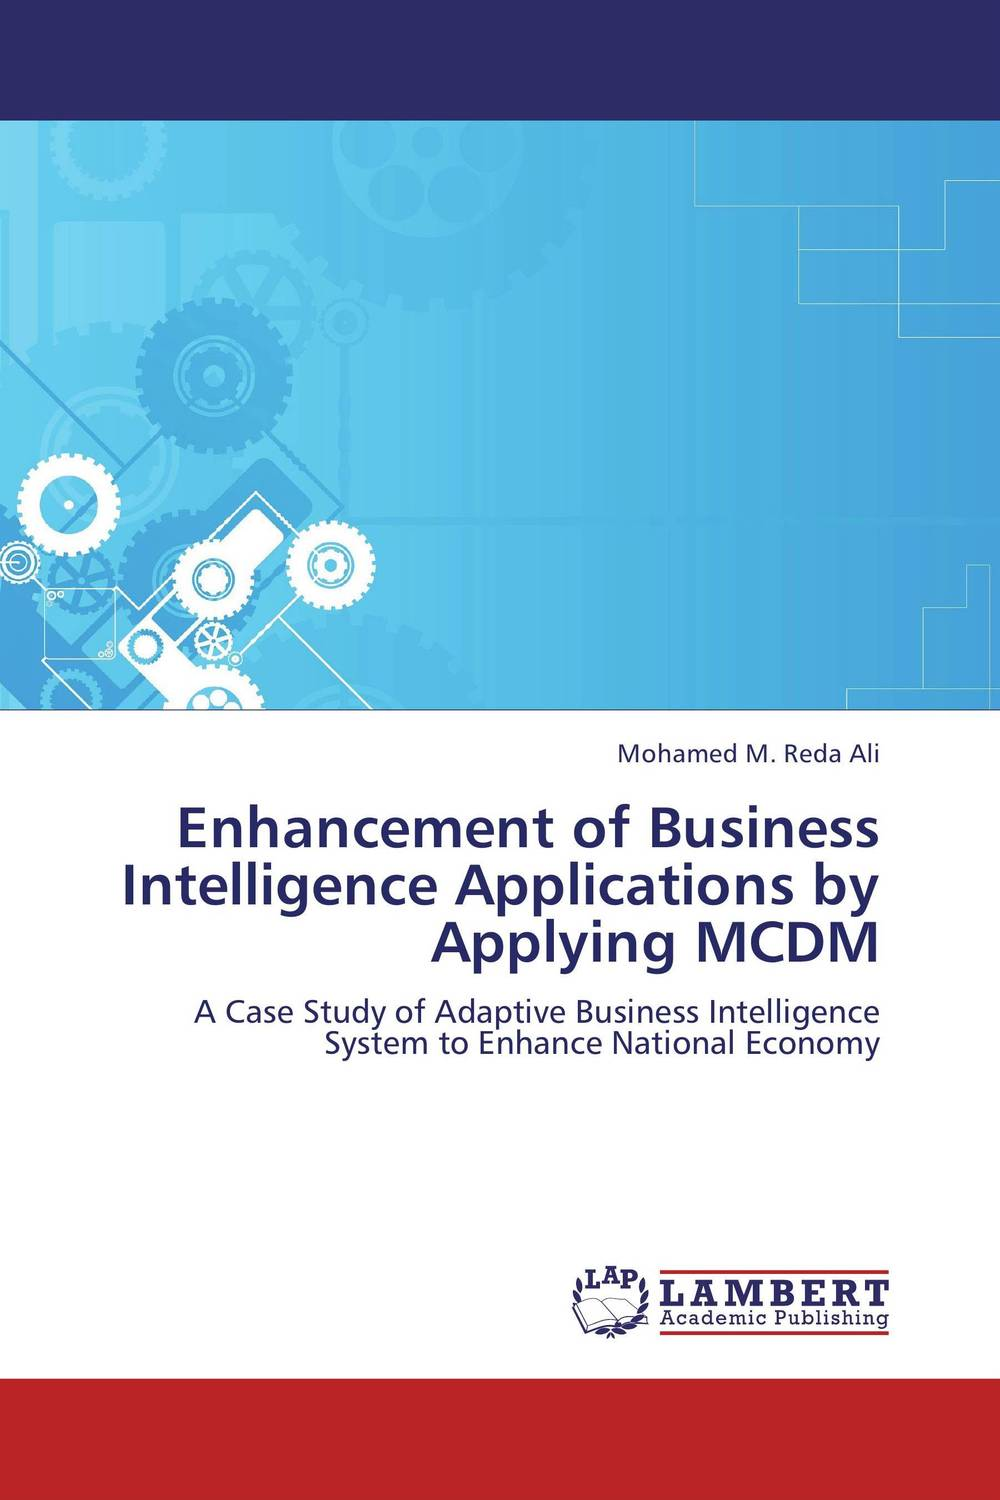 Enhancement of Business Intelligence Applications by Applying MCDM mike davis knight s microsoft business intelligence 24 hour trainer